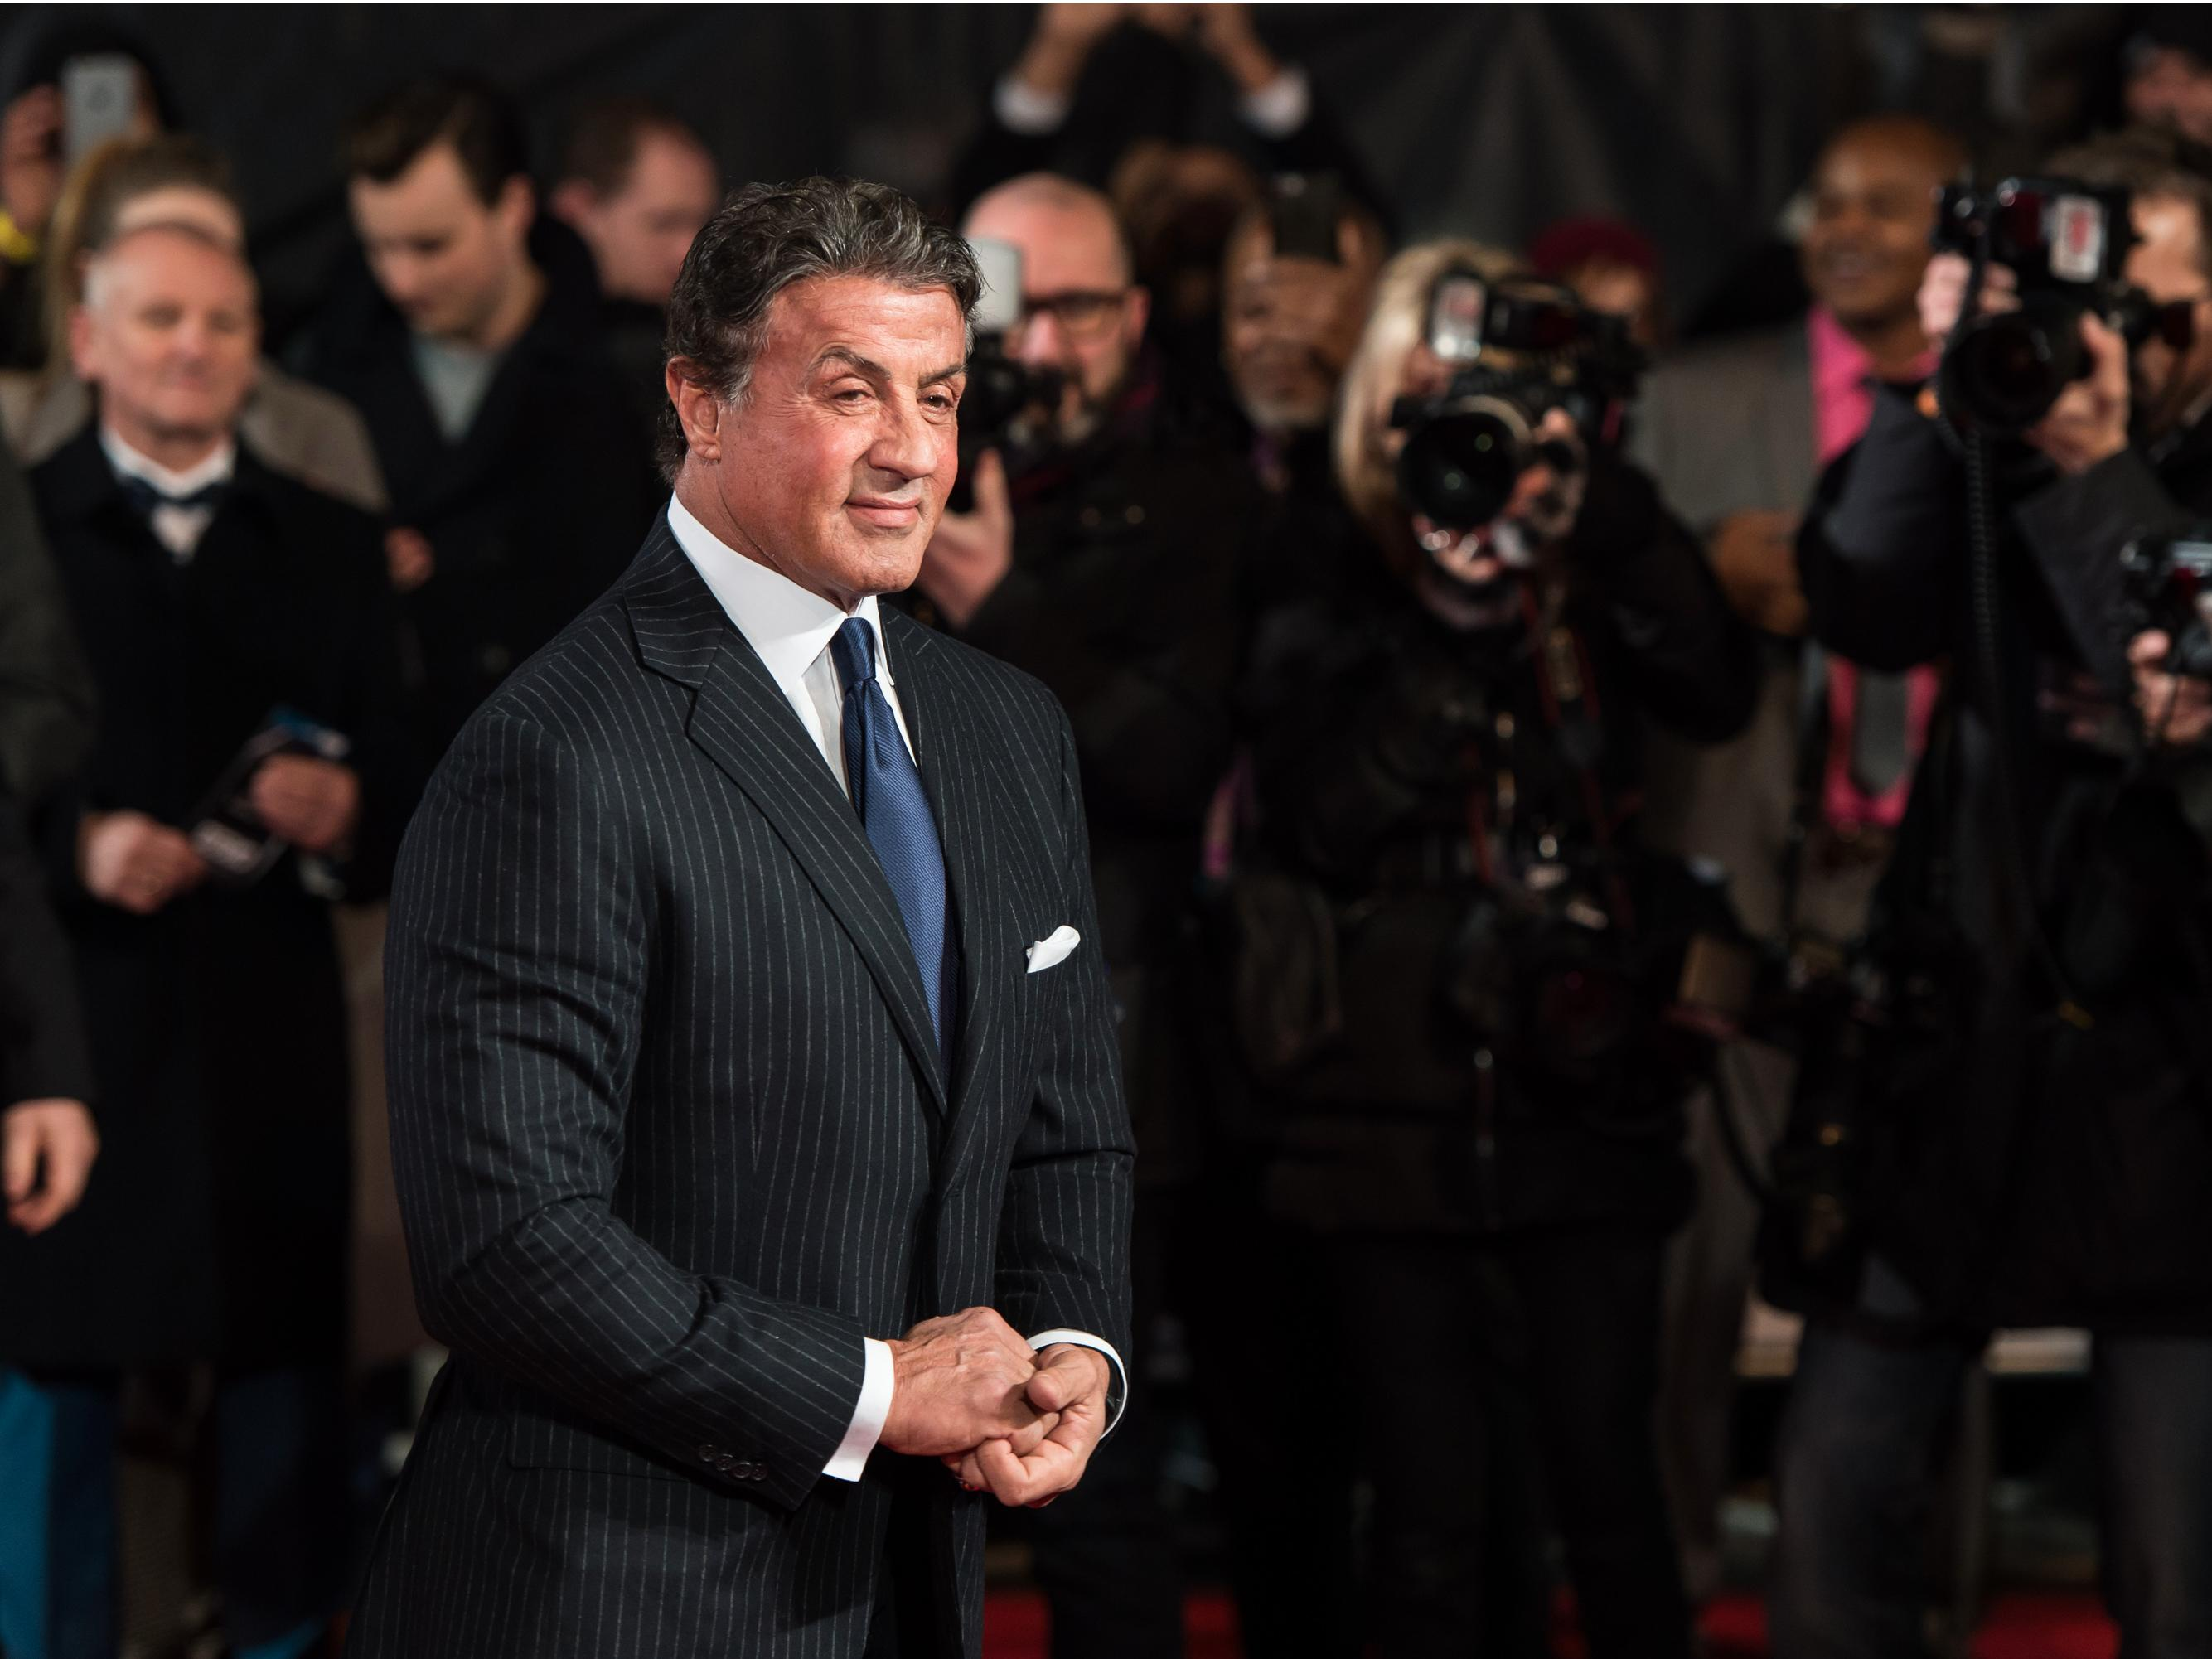 Sylvester Stallone offered to boycott this year's Oscars in solidarity with 'Creed' director